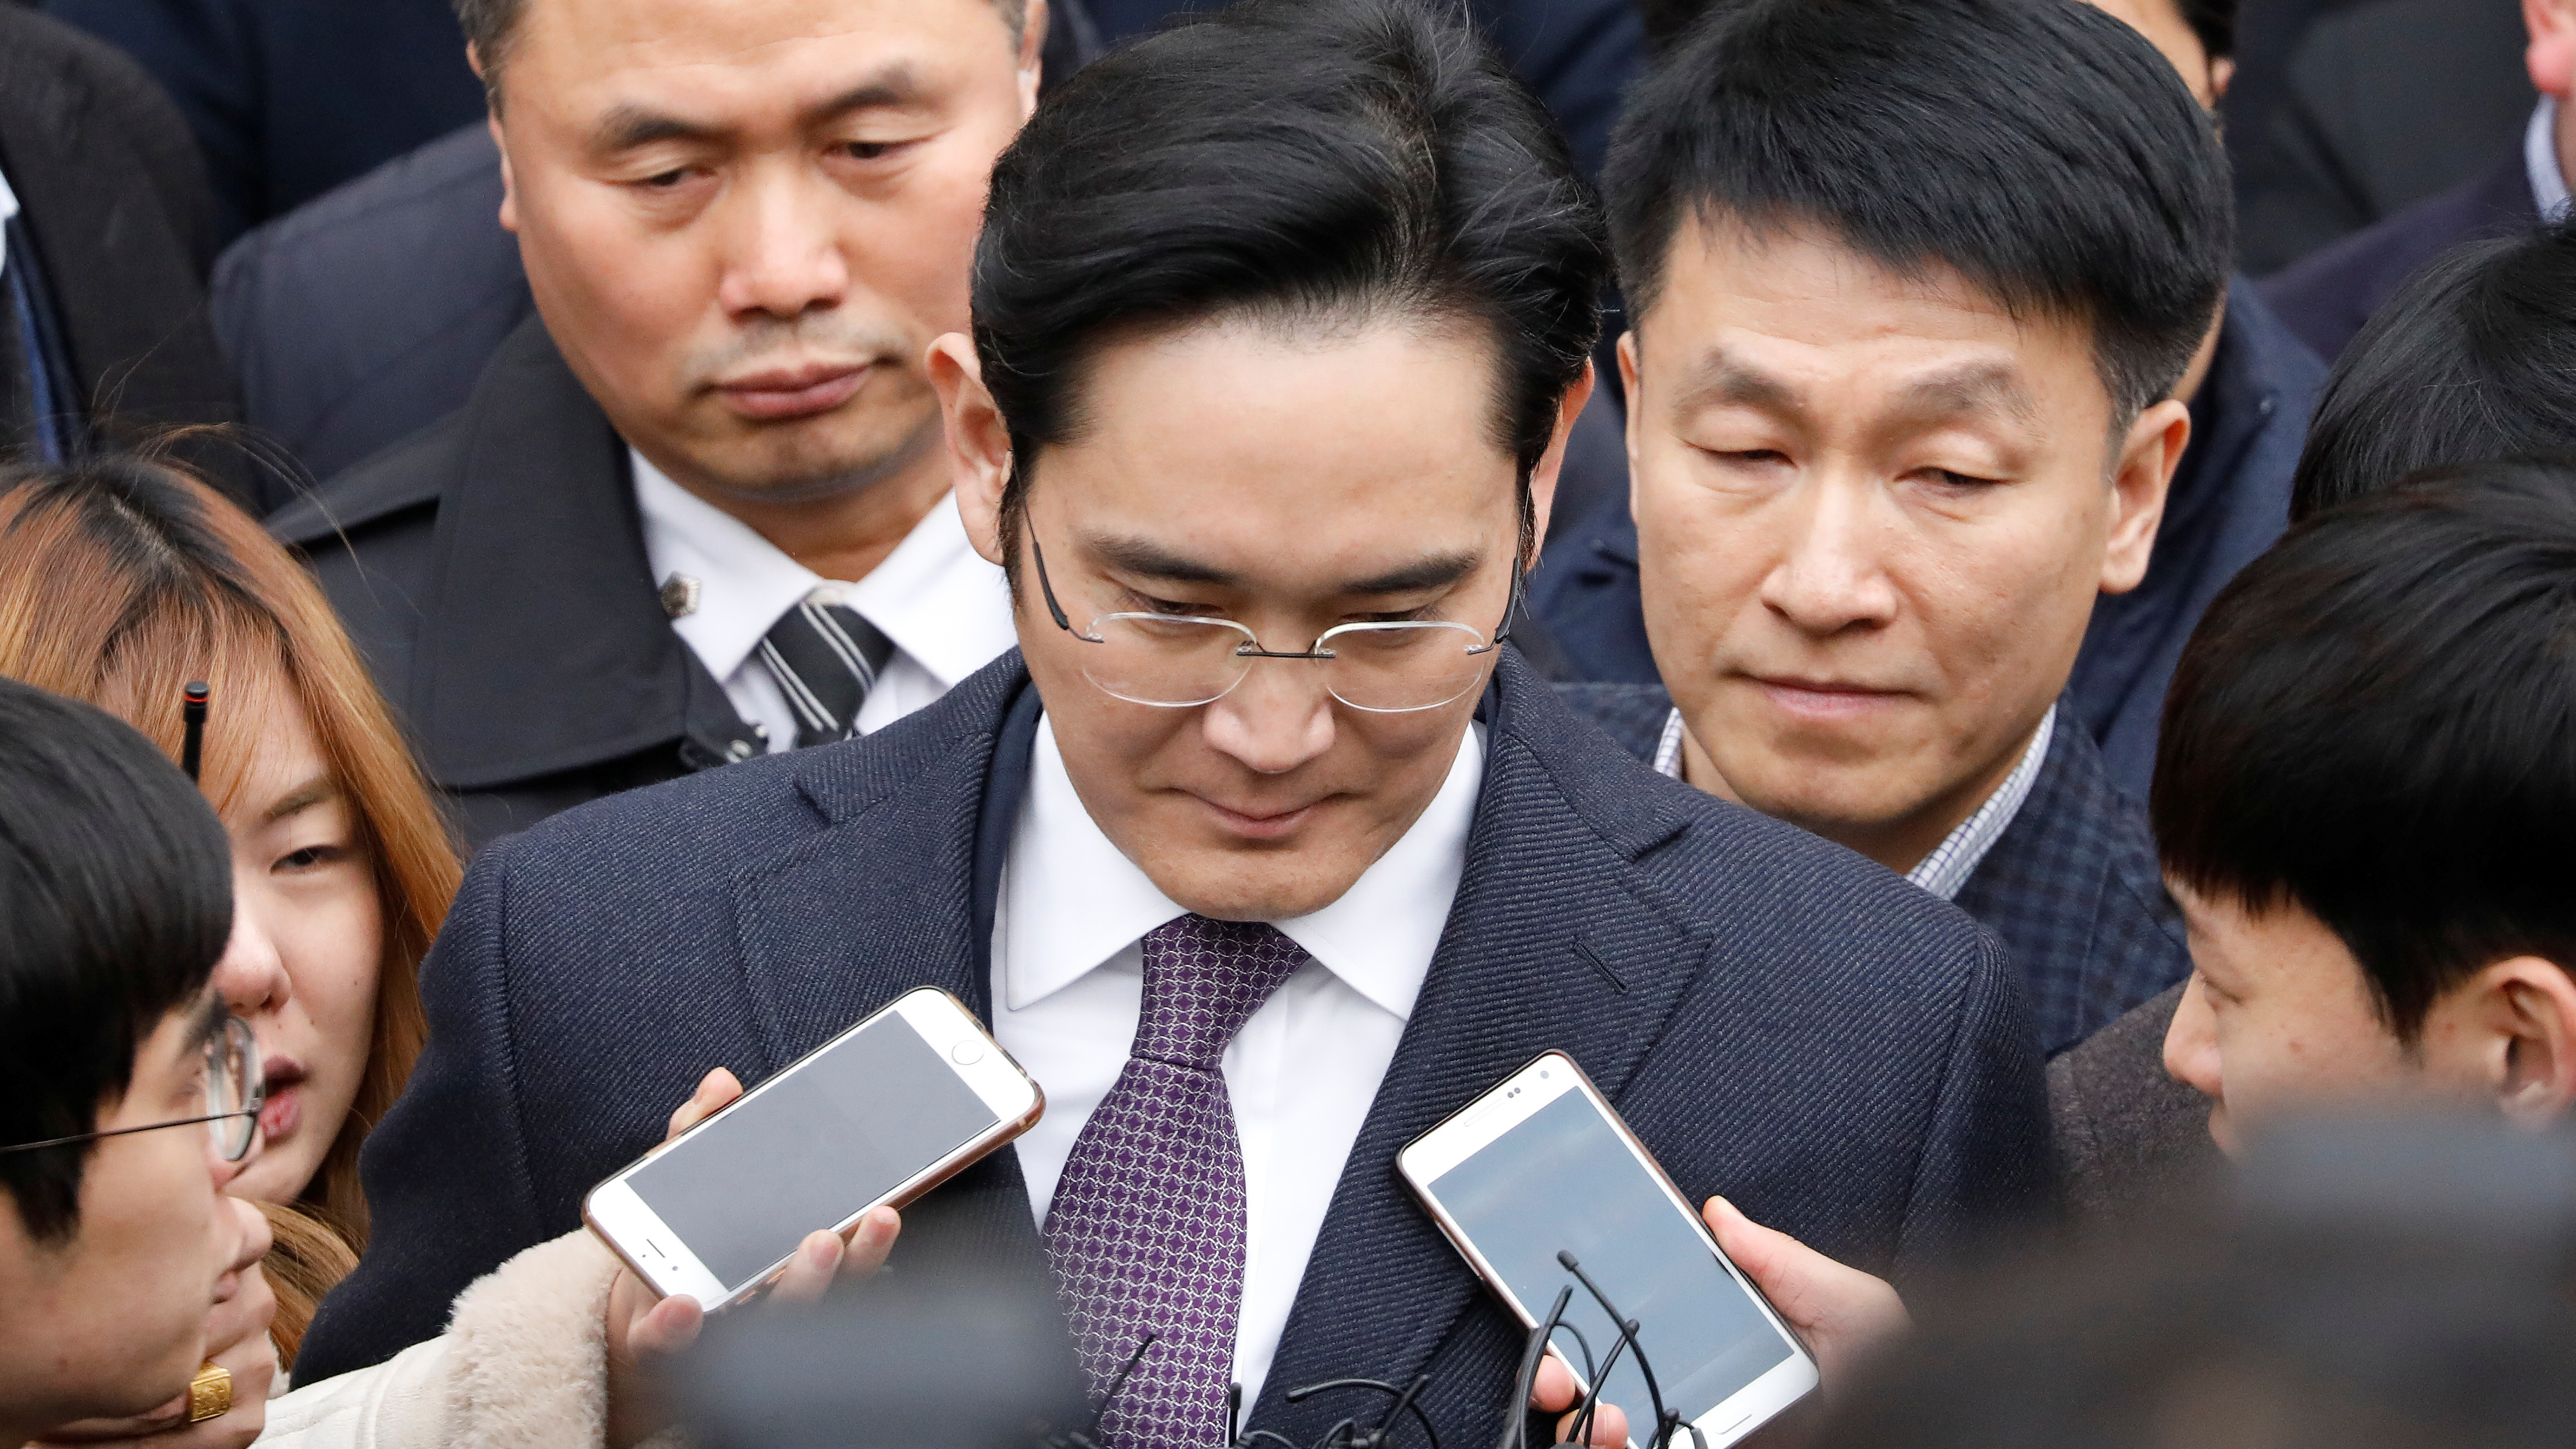 Arrestation du patron de Samsung dans l'affaire de trafic d'influence